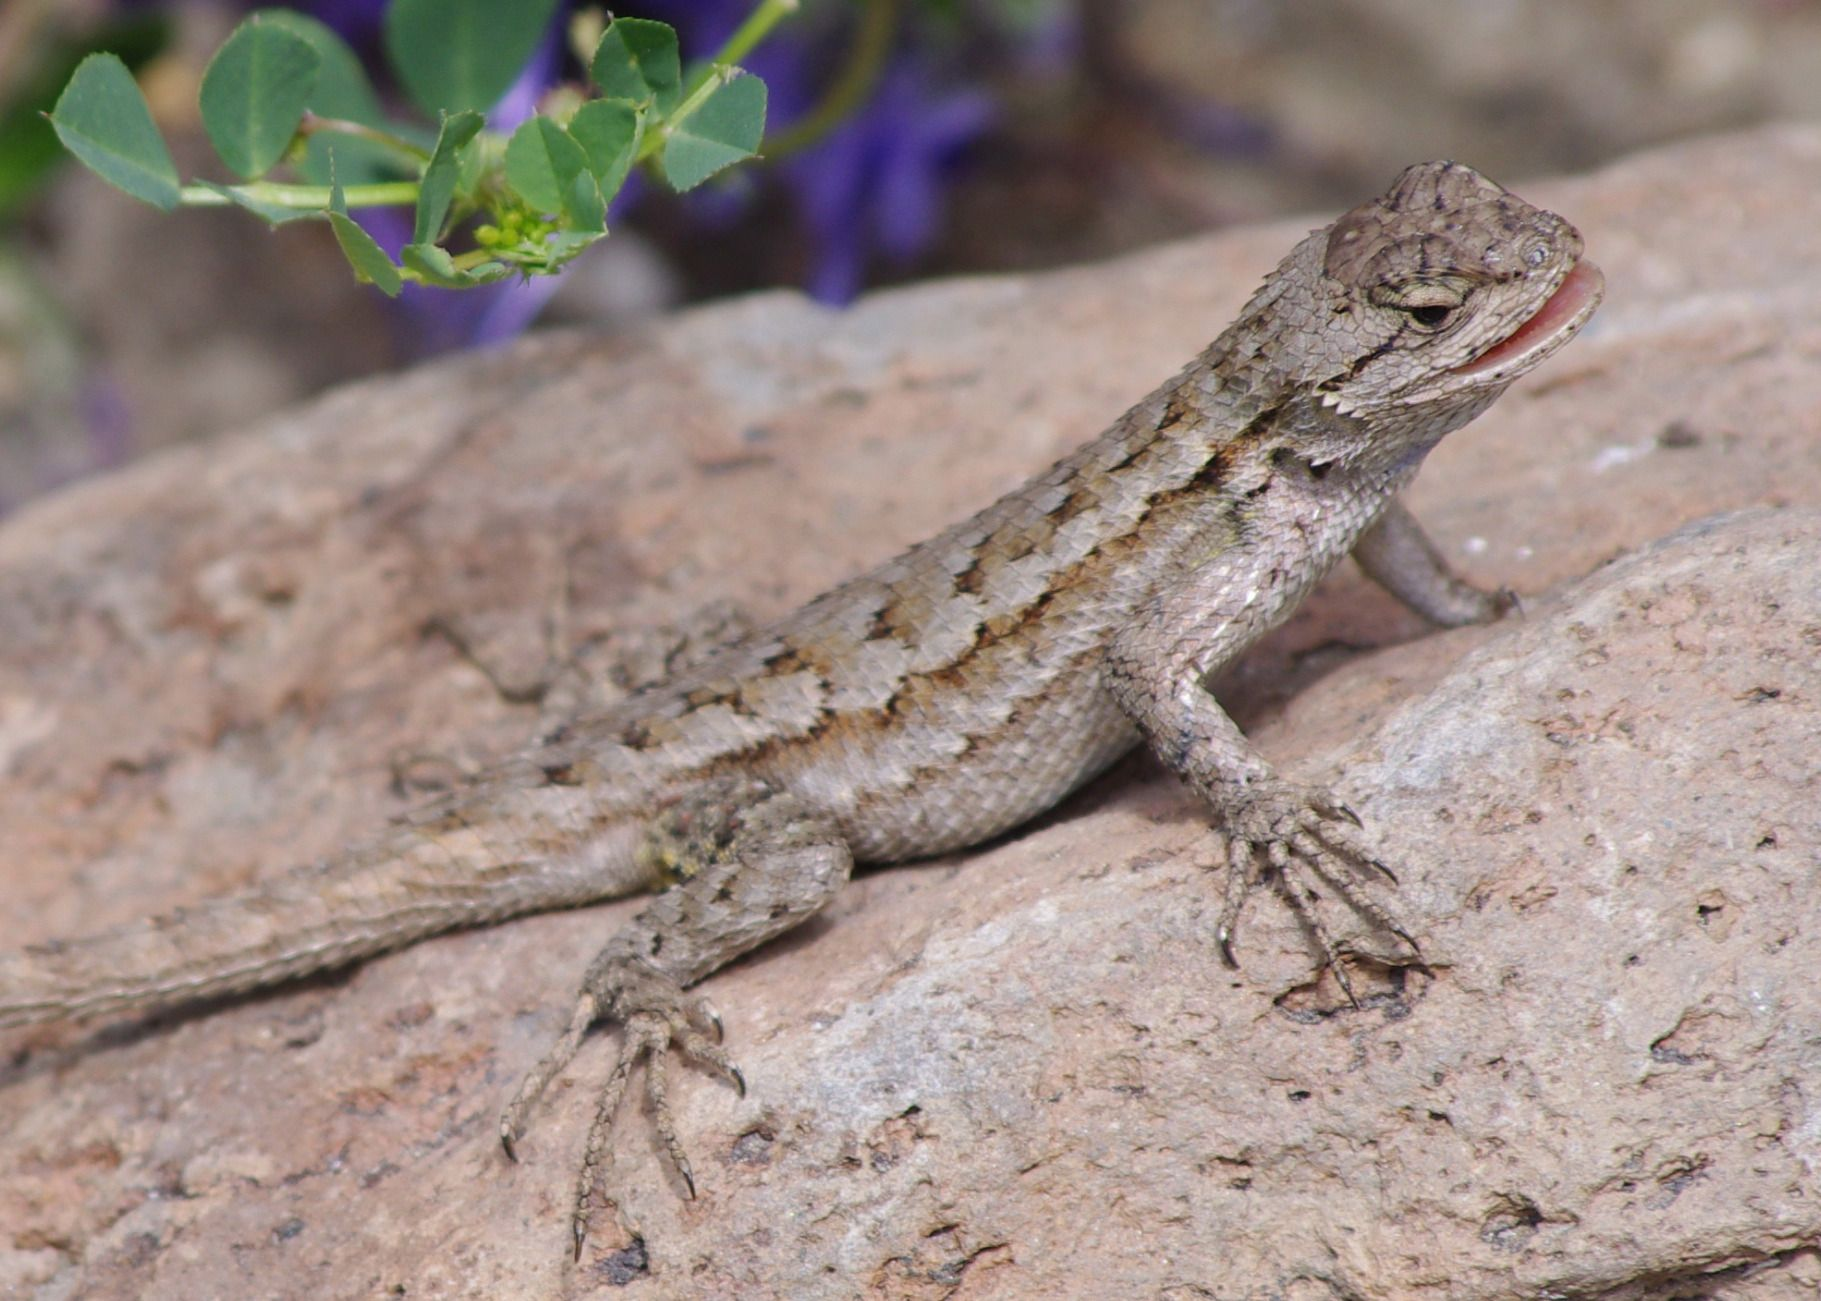 Family Xantusiidae Night Lizards With Images Lizard Small